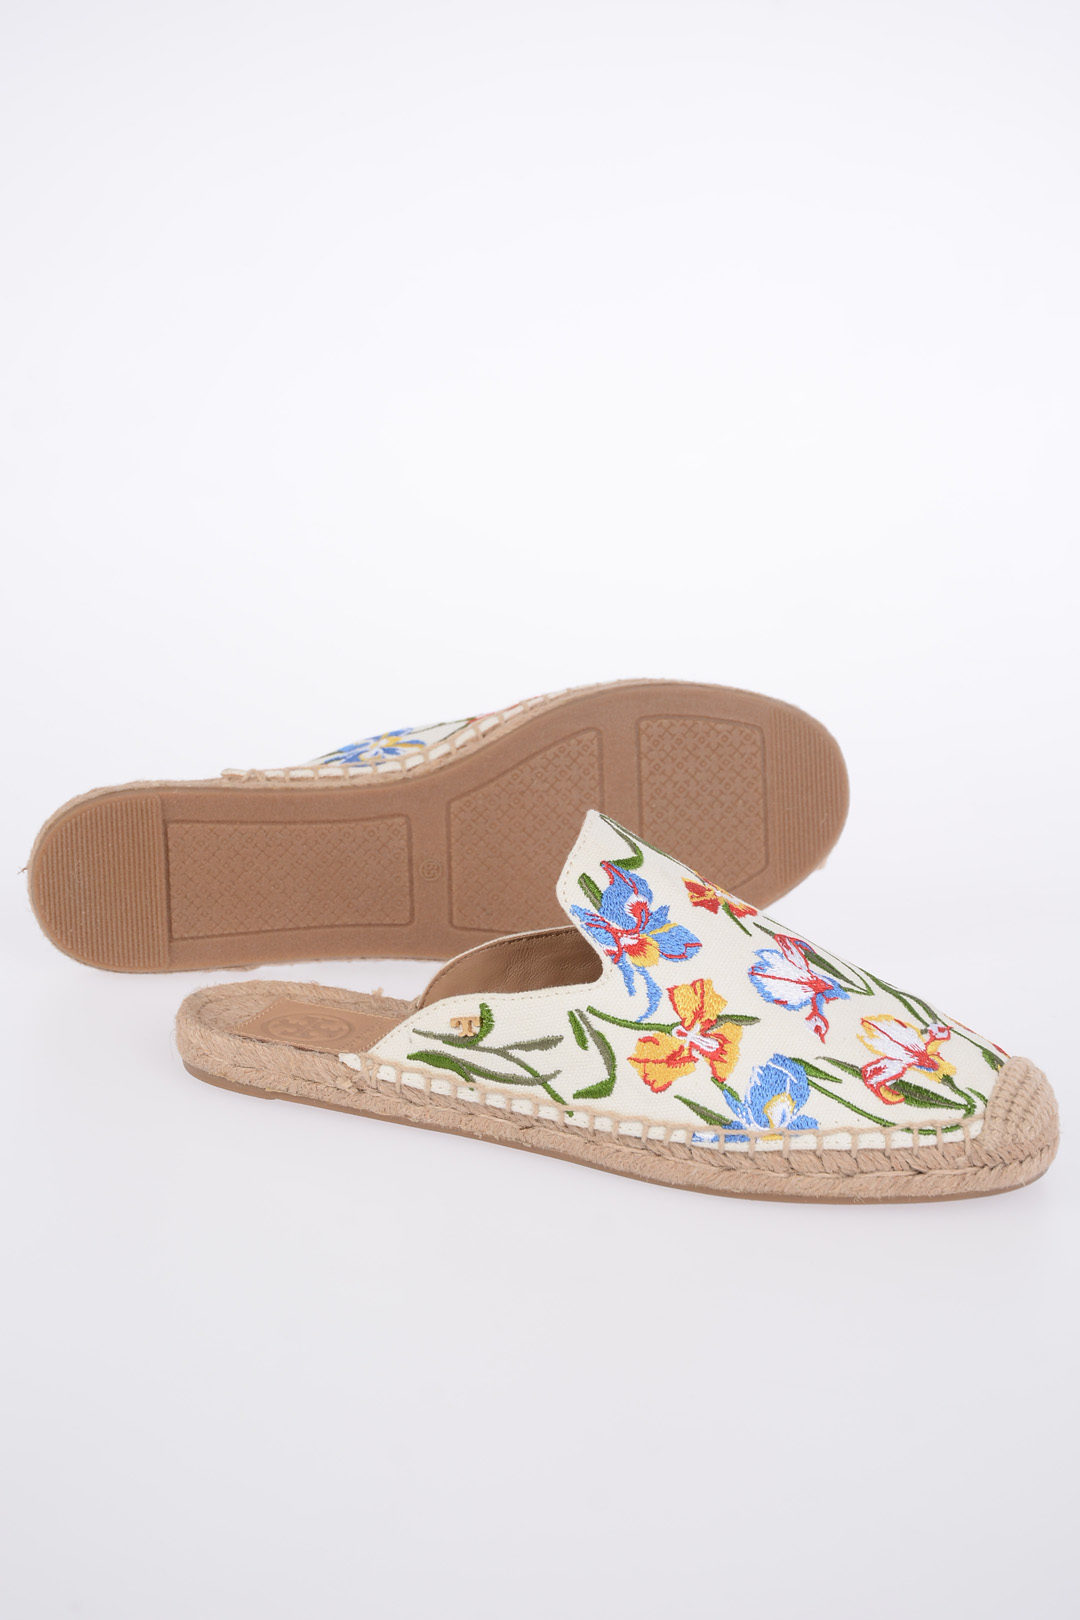 b3b80e85918f2 Tory Burch Embroidered Canvas Slippers women - Glamood Outlet